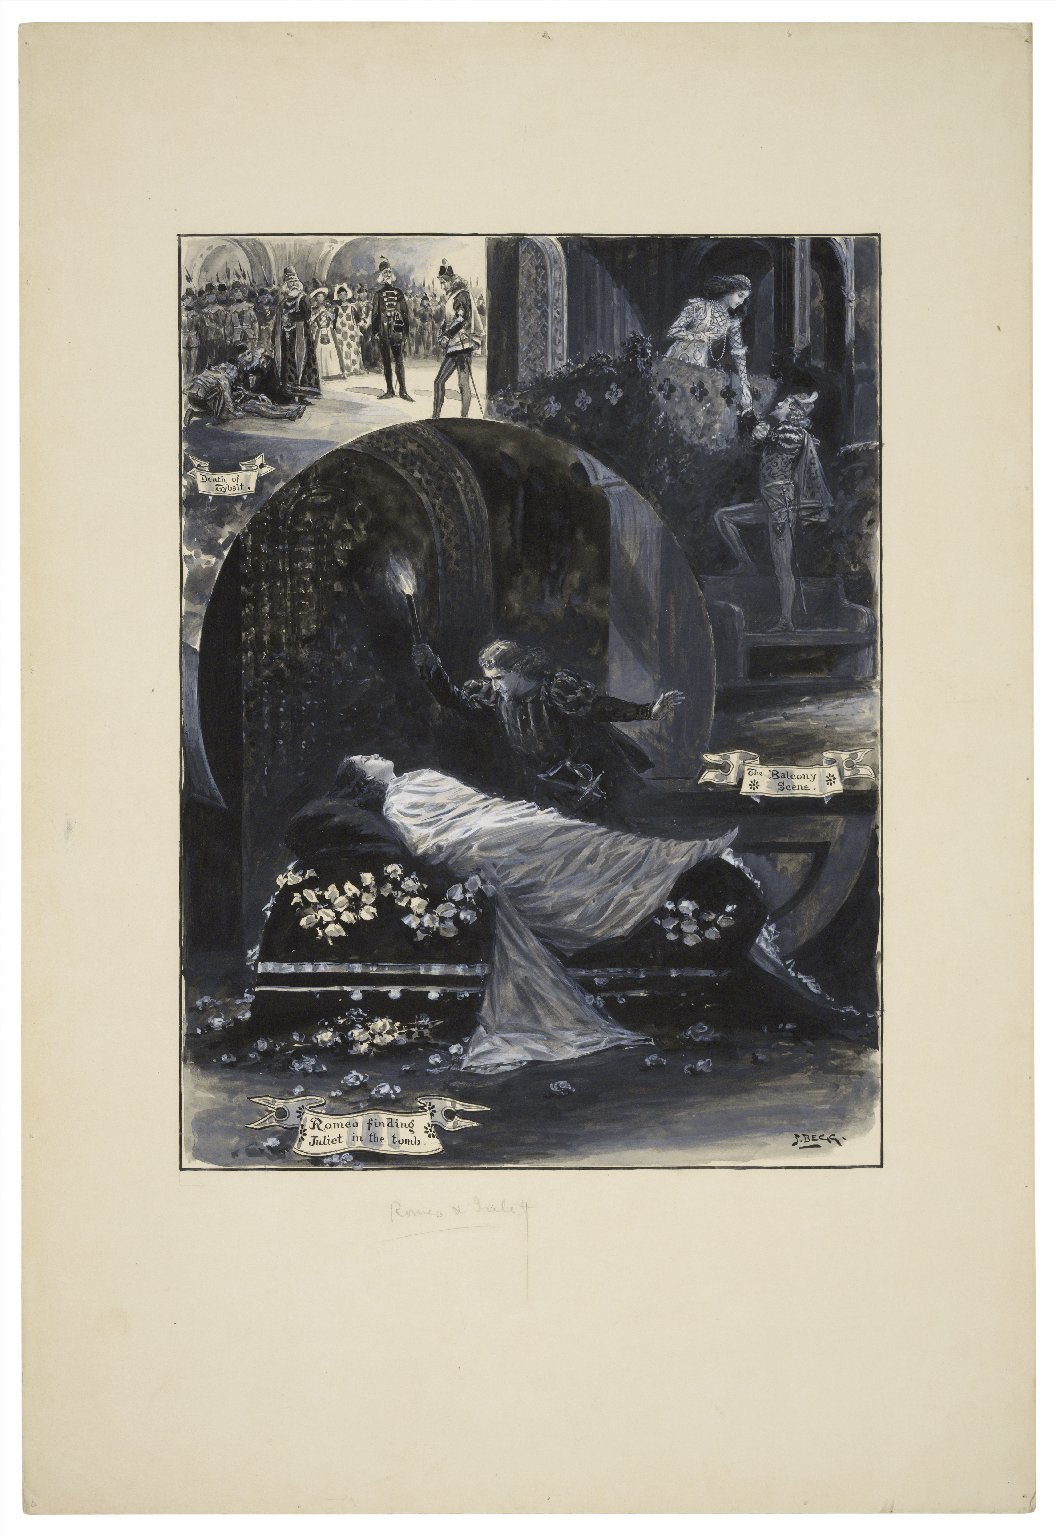 [Romeo and Juliet, three scenes:] Death of Tybalt ; The balcony scene ; Romeo finding Juliet in the tomb [graphic] / S. Begg.